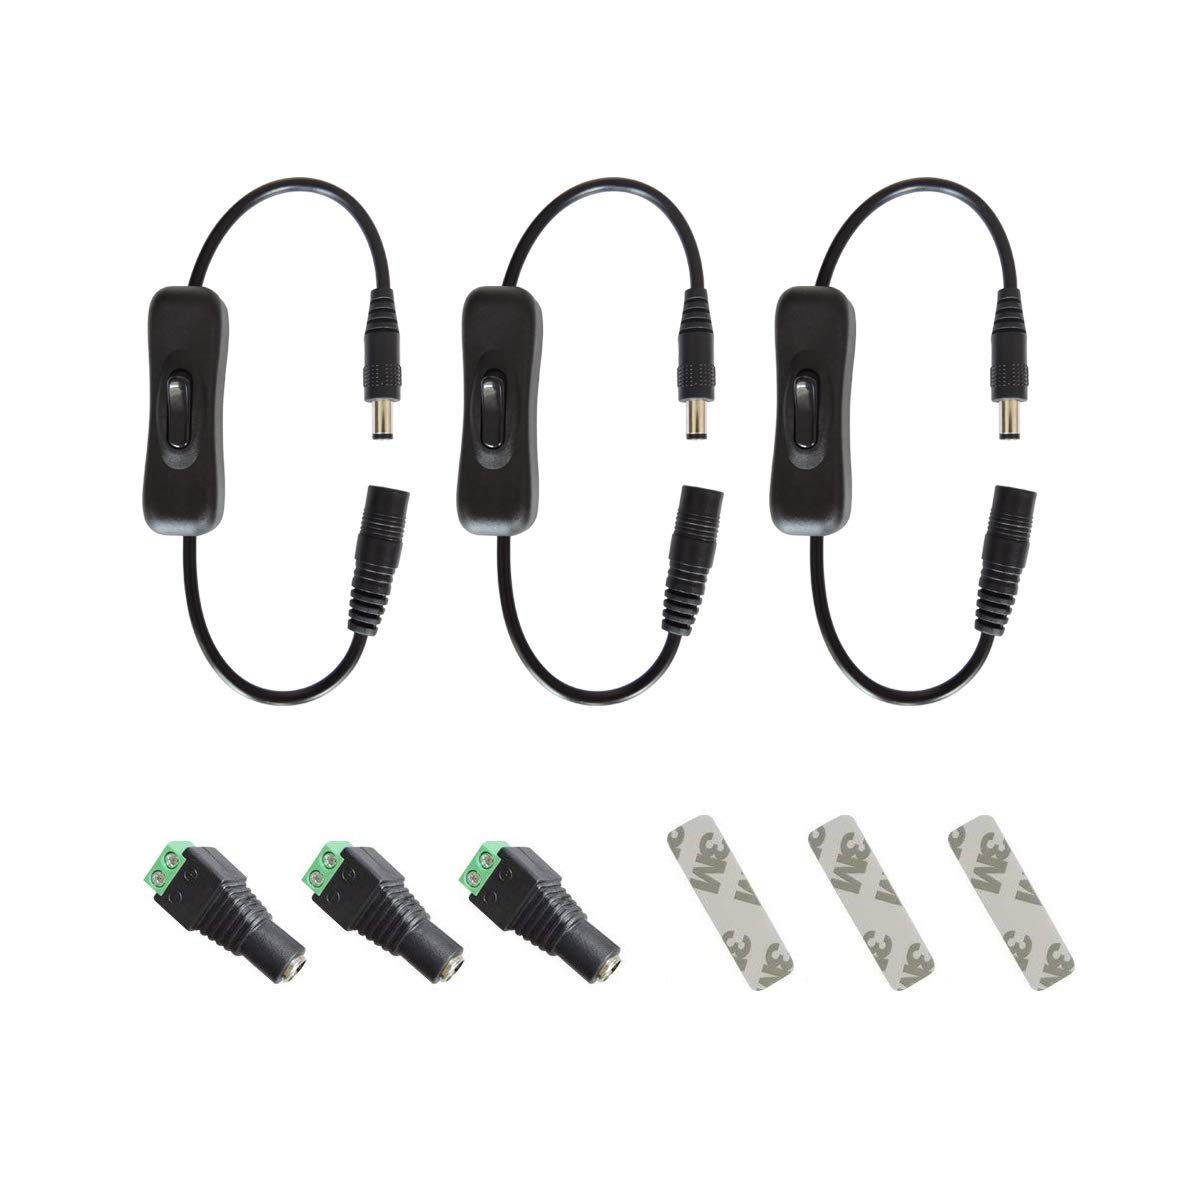 Gxilee DC 12v Inline Switch Kit for 3528 2835 5050 5630 LED Light Strip, CCTV Security Camera,Includes 3X Black Manual Inline on Off Switch,3X Female DC Power Plug Adapter,3X Adhensive 3M Tape